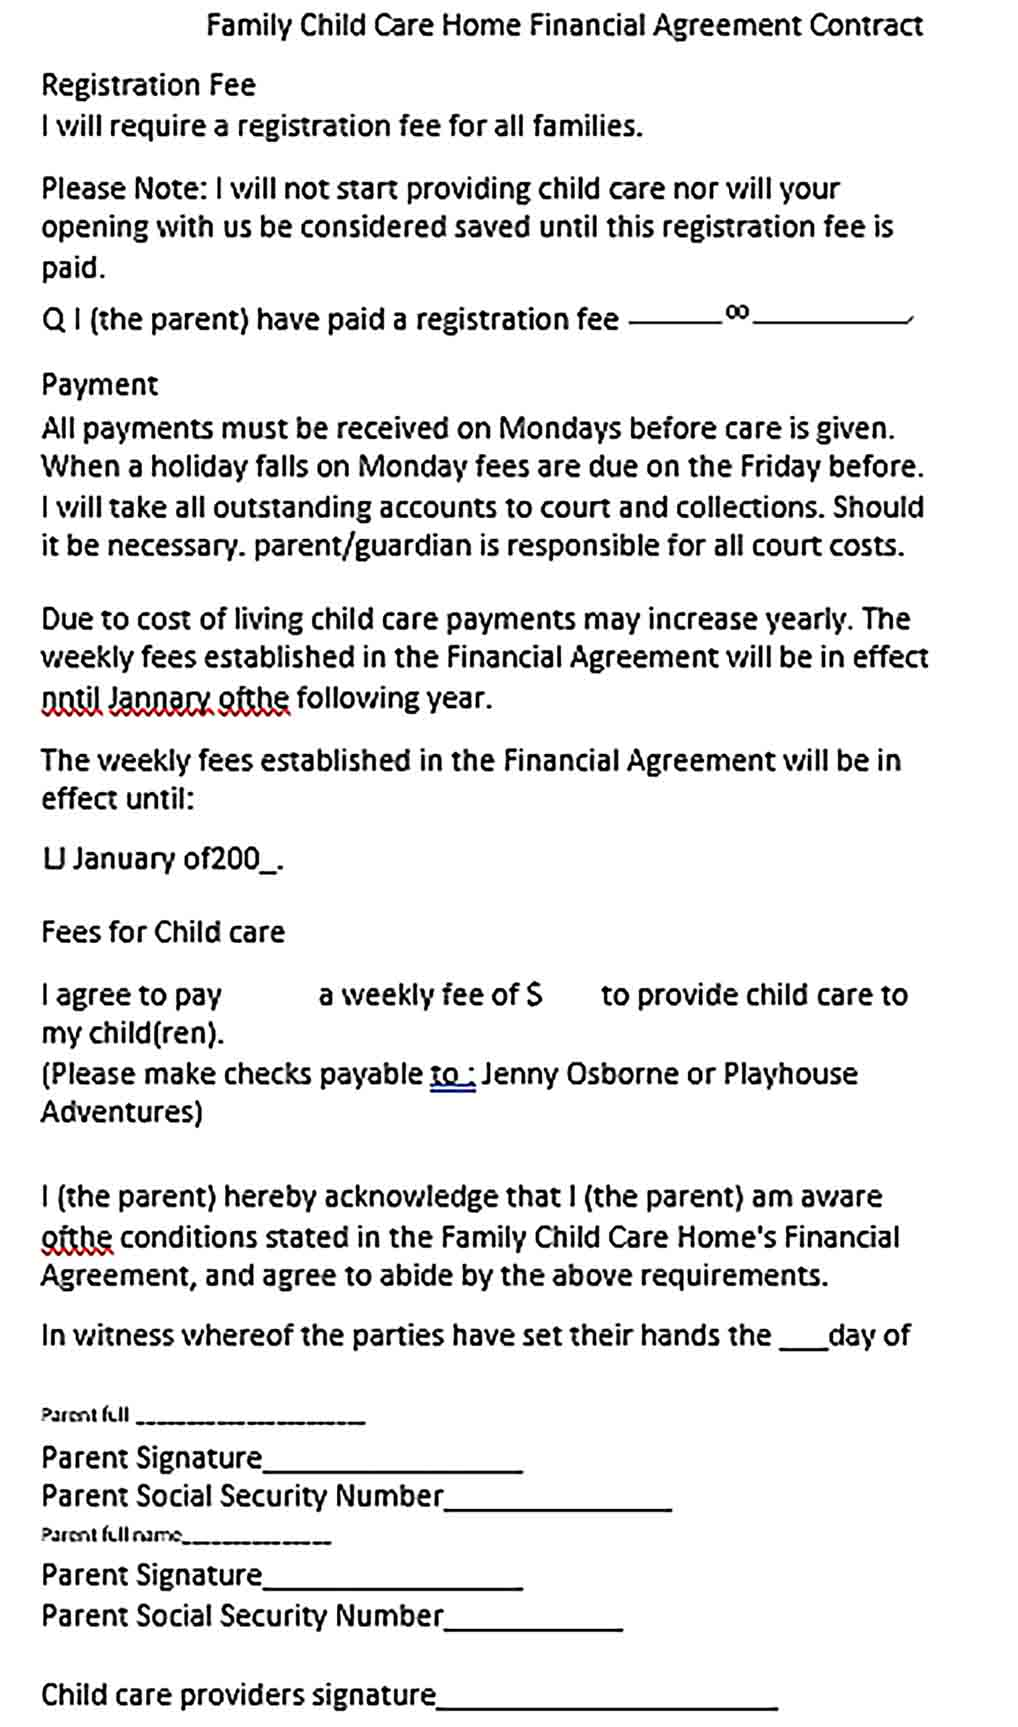 Sample Child Care Financial Agreement